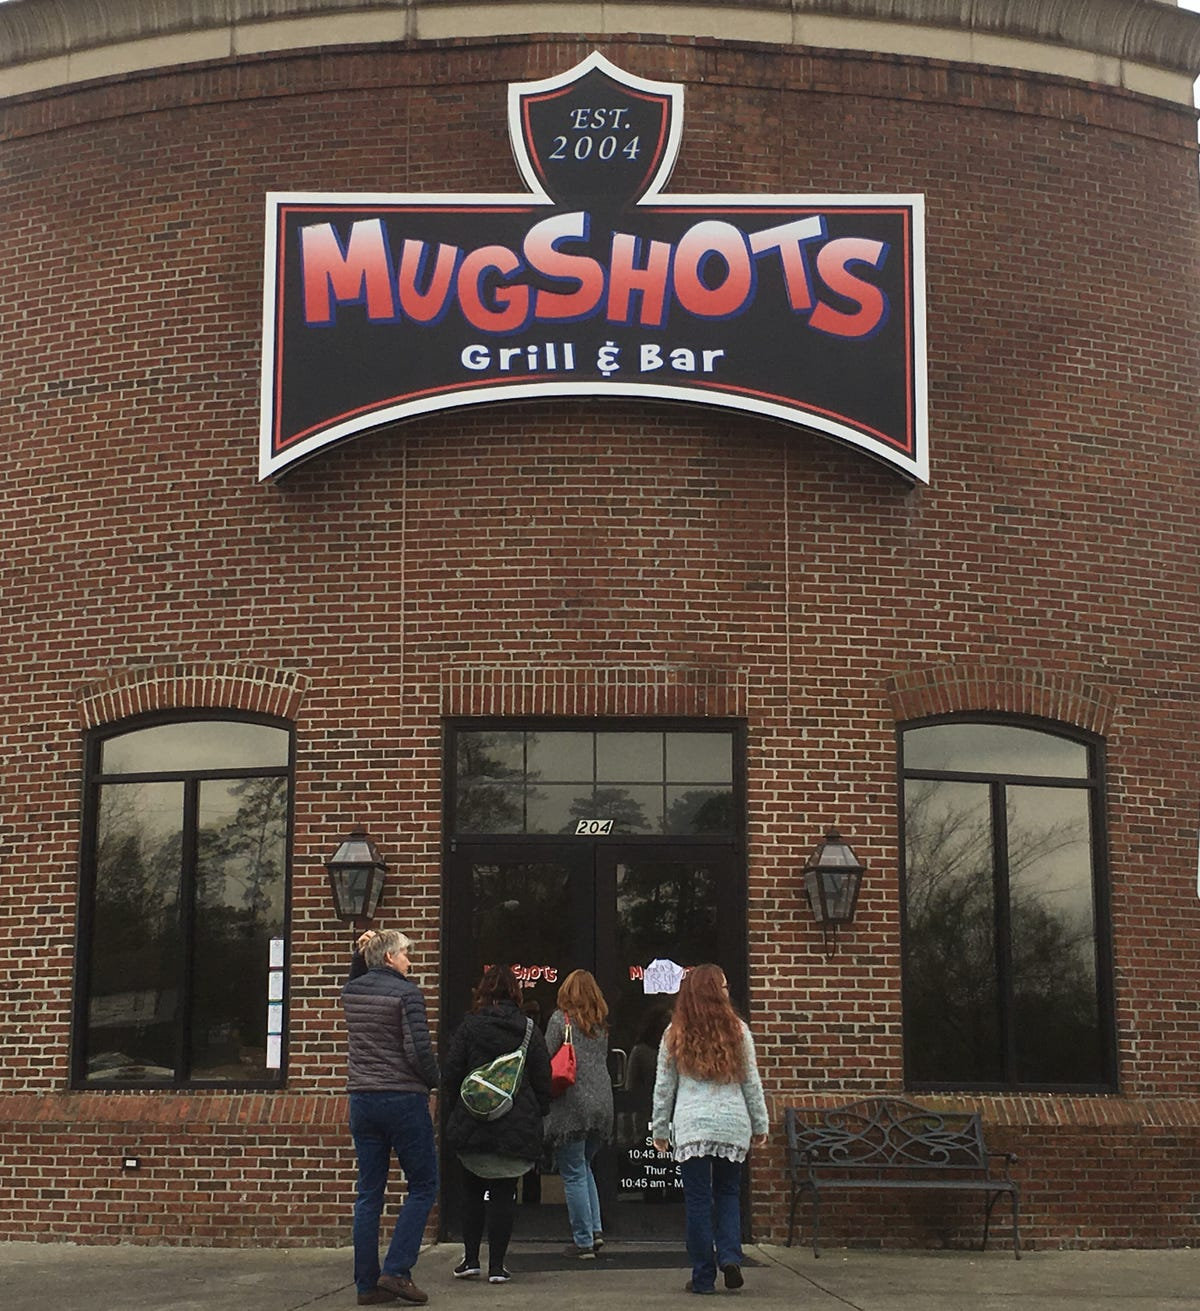 Ron Savell sole owner of Mugshots brand